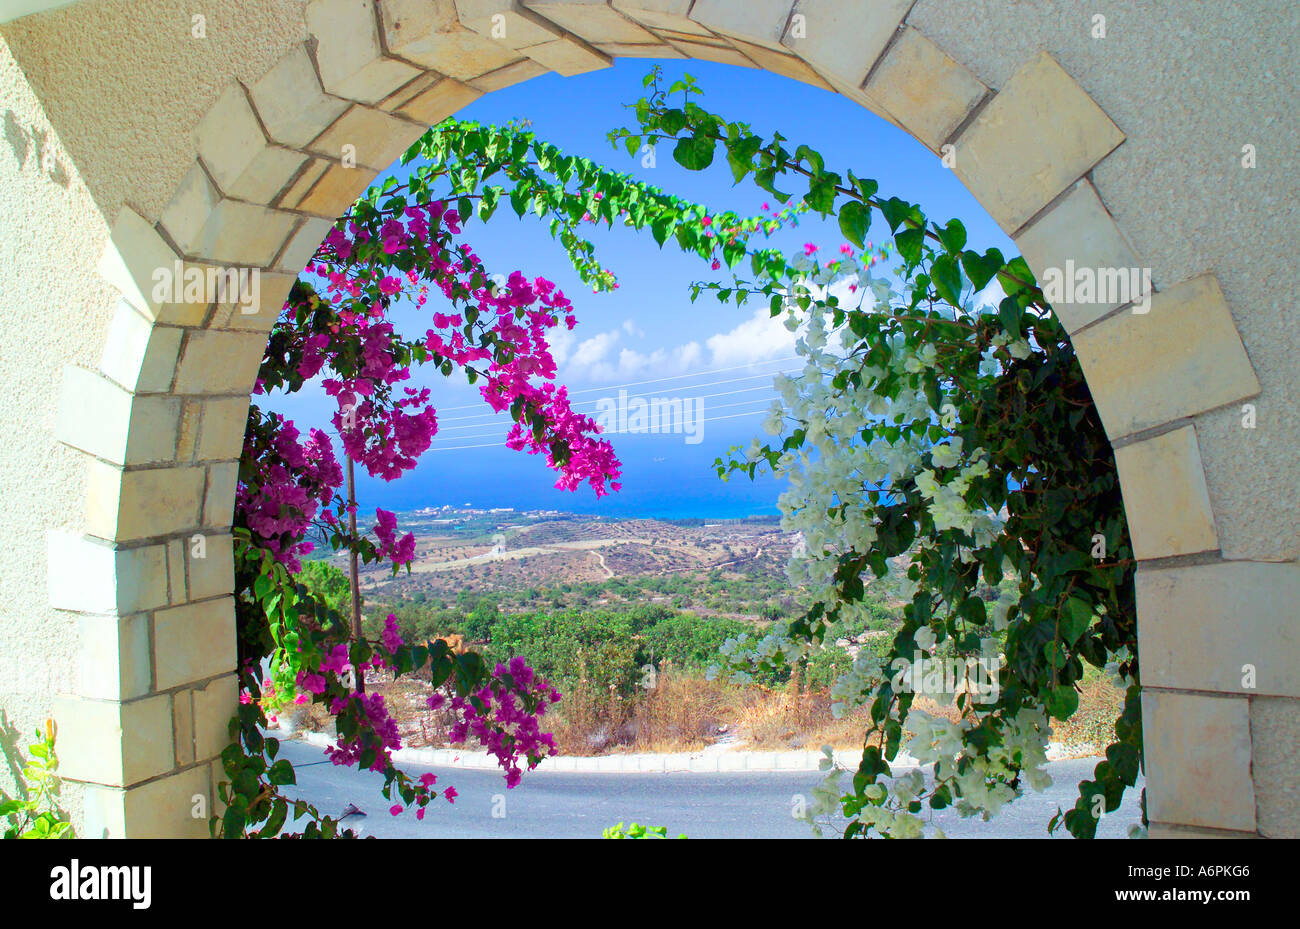 SUNNY VIEW OF THE SEA THROUGH A STONE ARCHWAY WITH FLOWERS AND HILLS AND BLUE SKY IN BACKGROUND - Stock Image